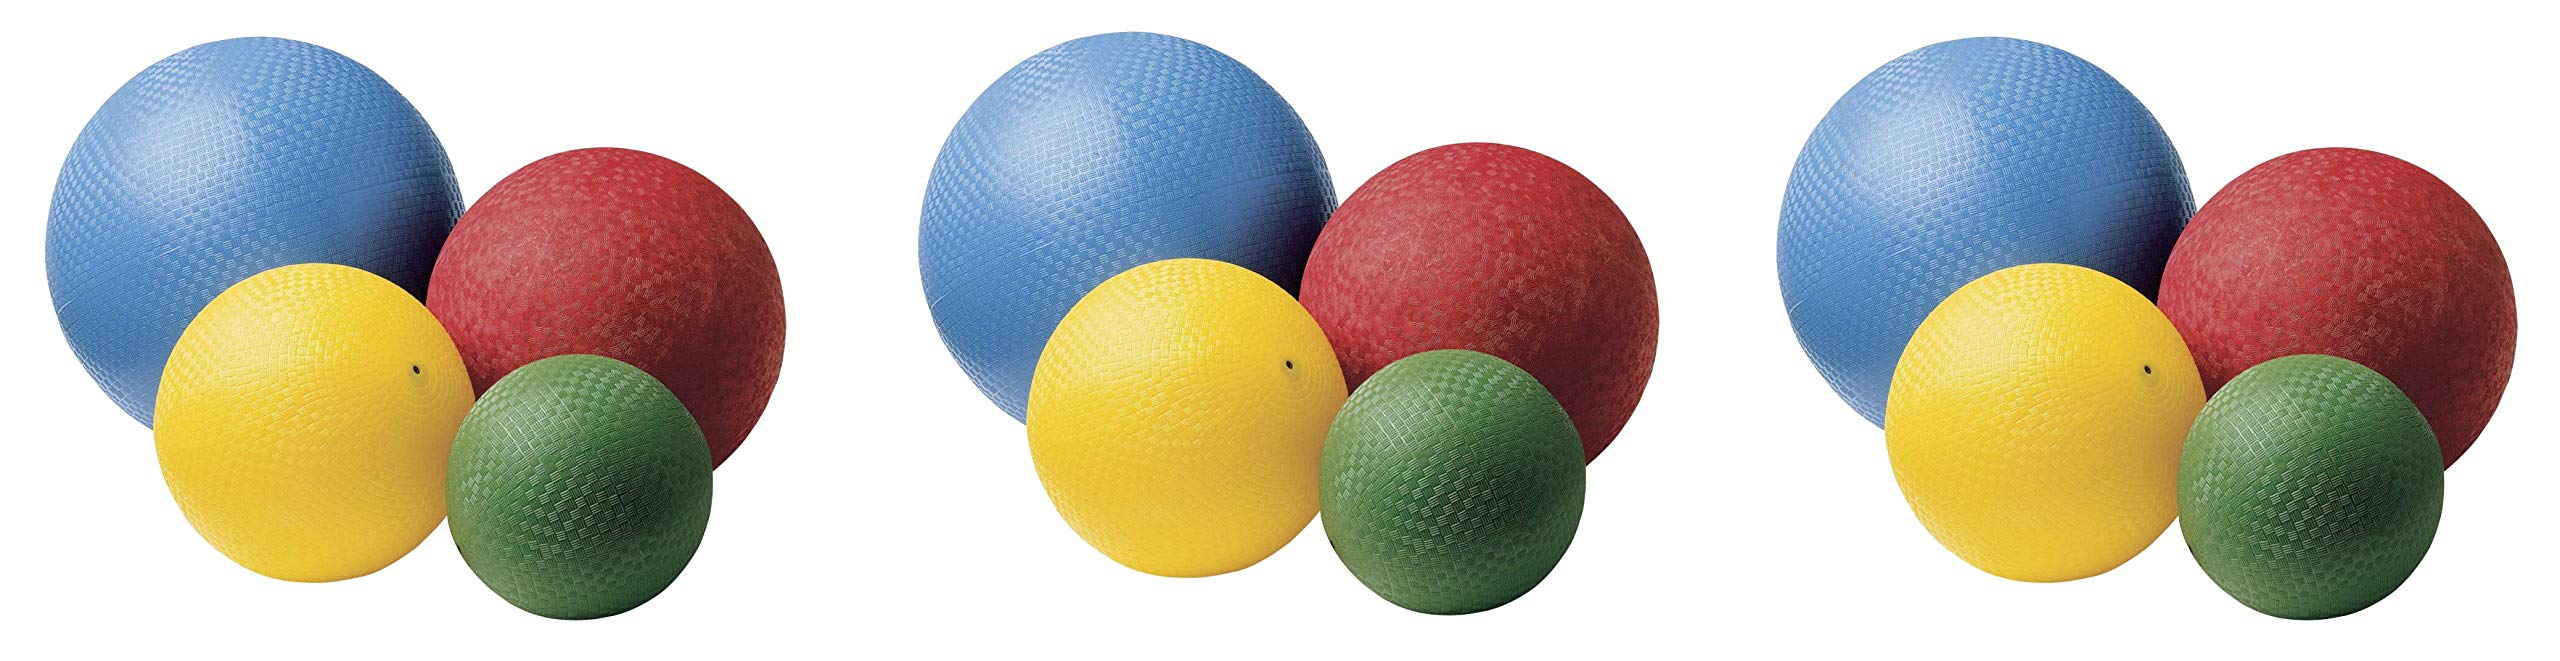 Sportime Rubber Playground Ball Set, Assorted Size, Assorted Color, Set of 12 (3-Pack) by Sportime